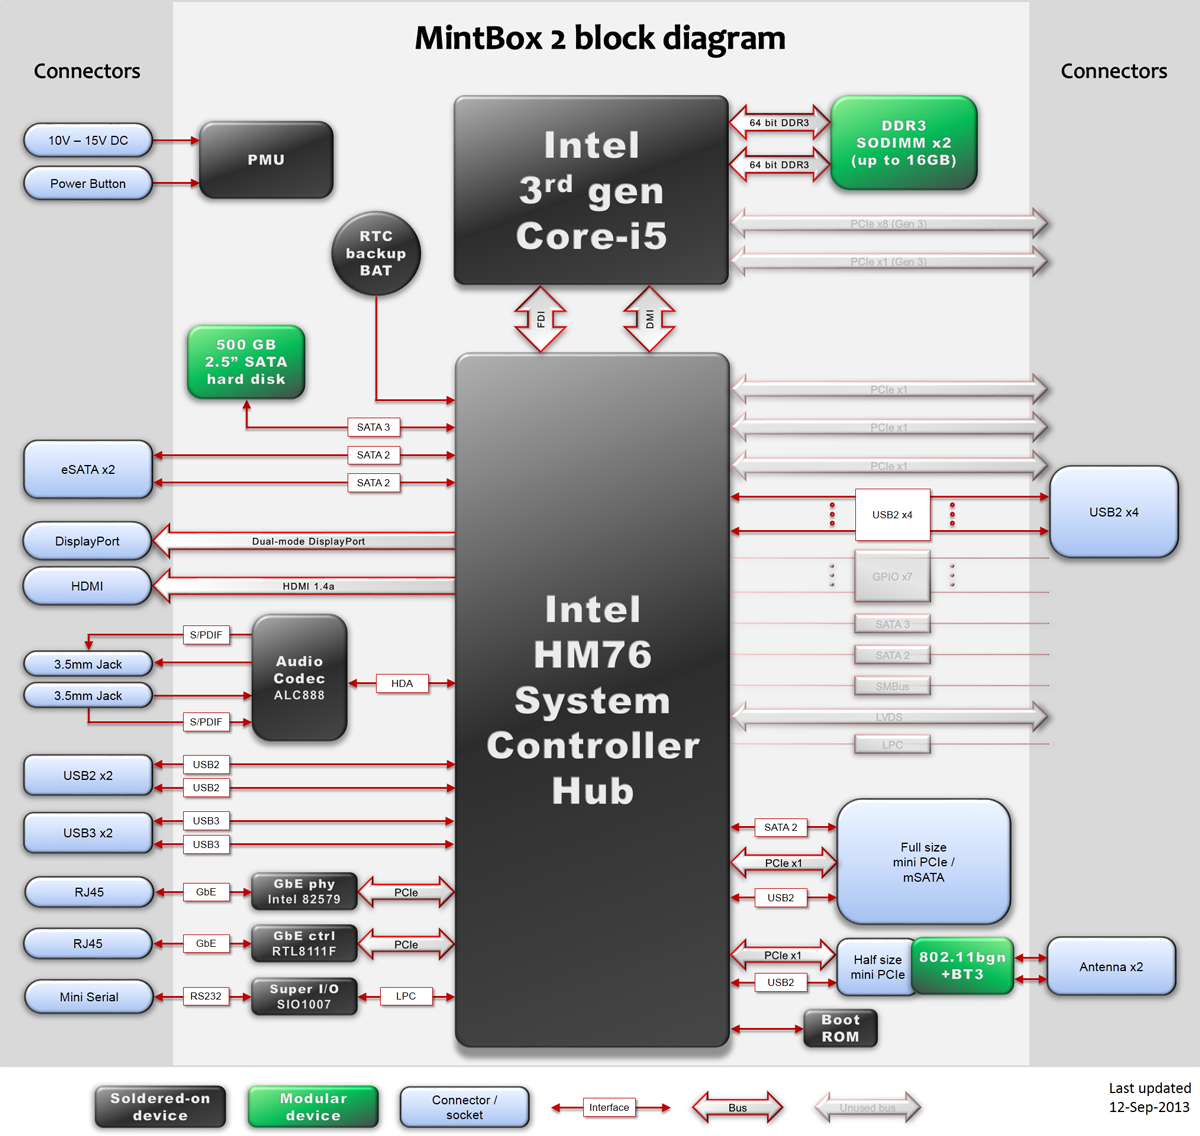 Mintbox 2 Gallery Year Block Diagram